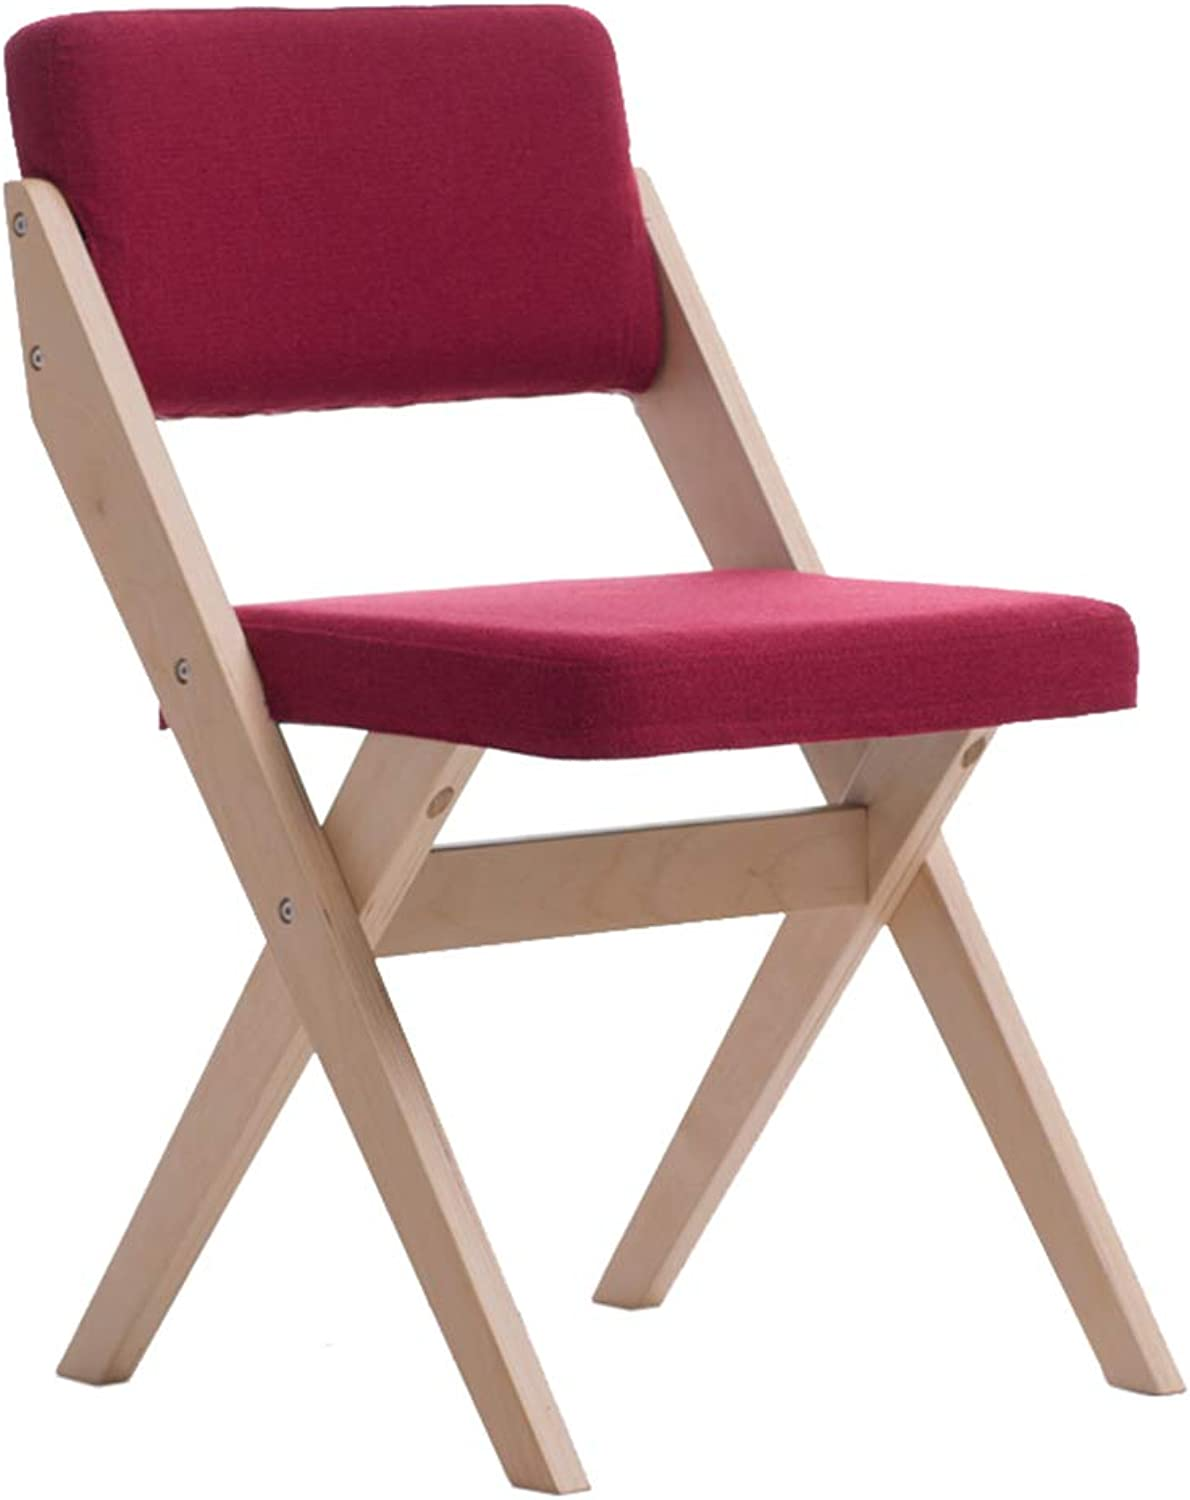 Folding Chair Solid Wood Back Support Furniture Desk Dining Chair Leisure Discussion Reception Chair - Dark Red